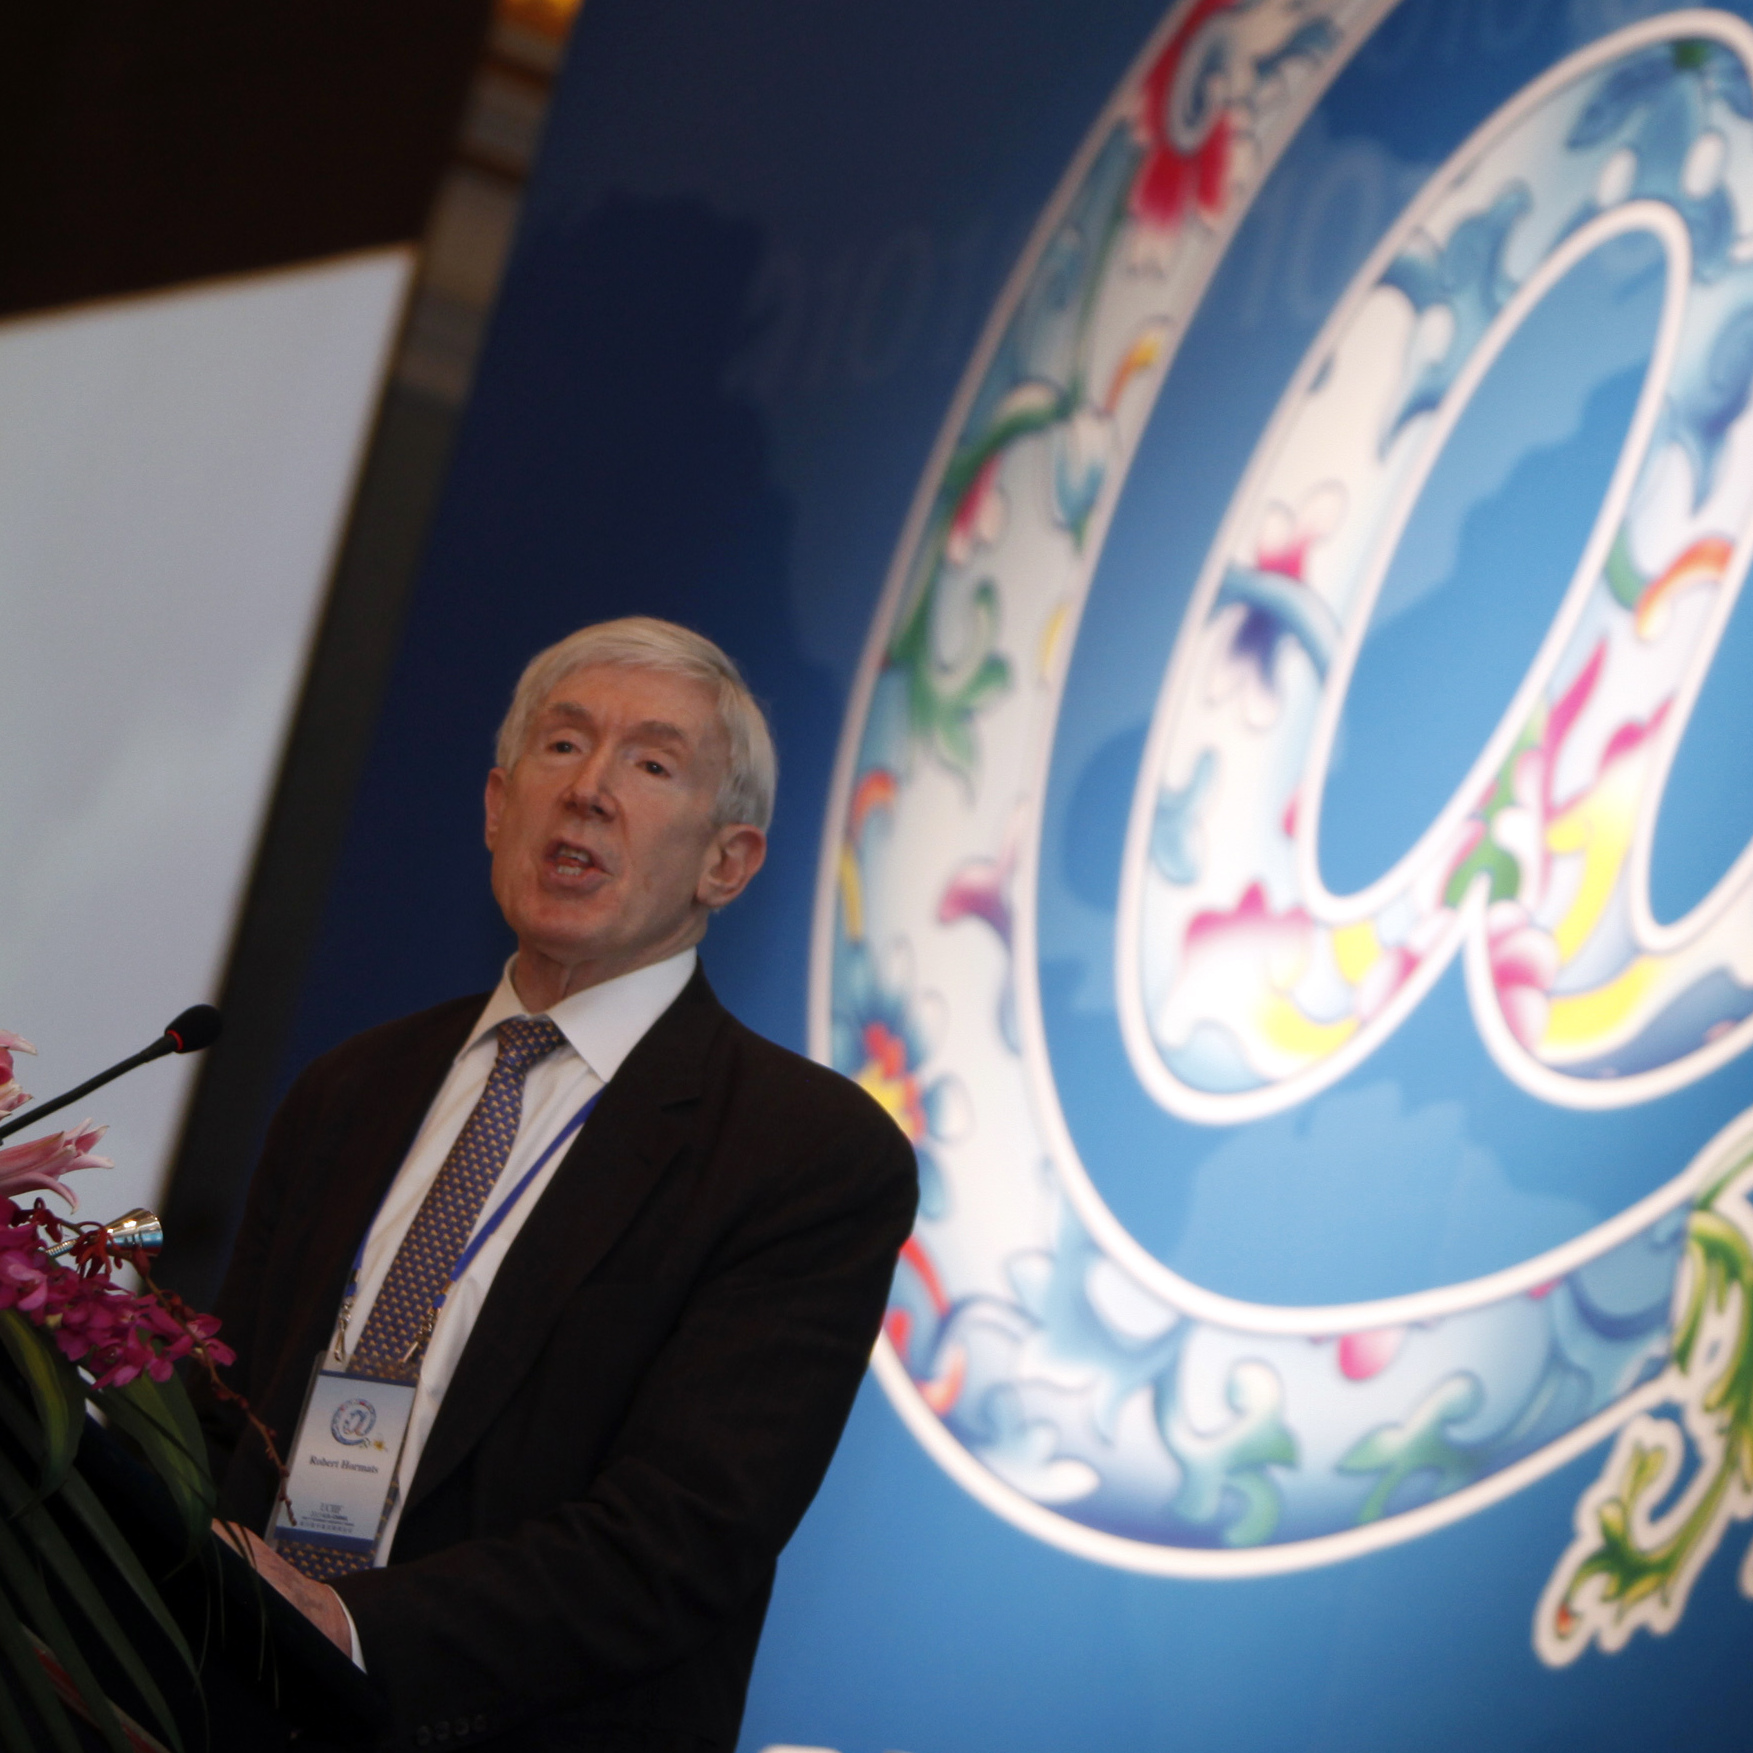 Robert Hormats, U.S. undersecretary of state for economic growth, energy and the environment, delivers a speech at the 6th U.S.-China Internet Industry Forum in Beijing on April 9. He warns that theft of intellectual property has become a major source of mistrust.